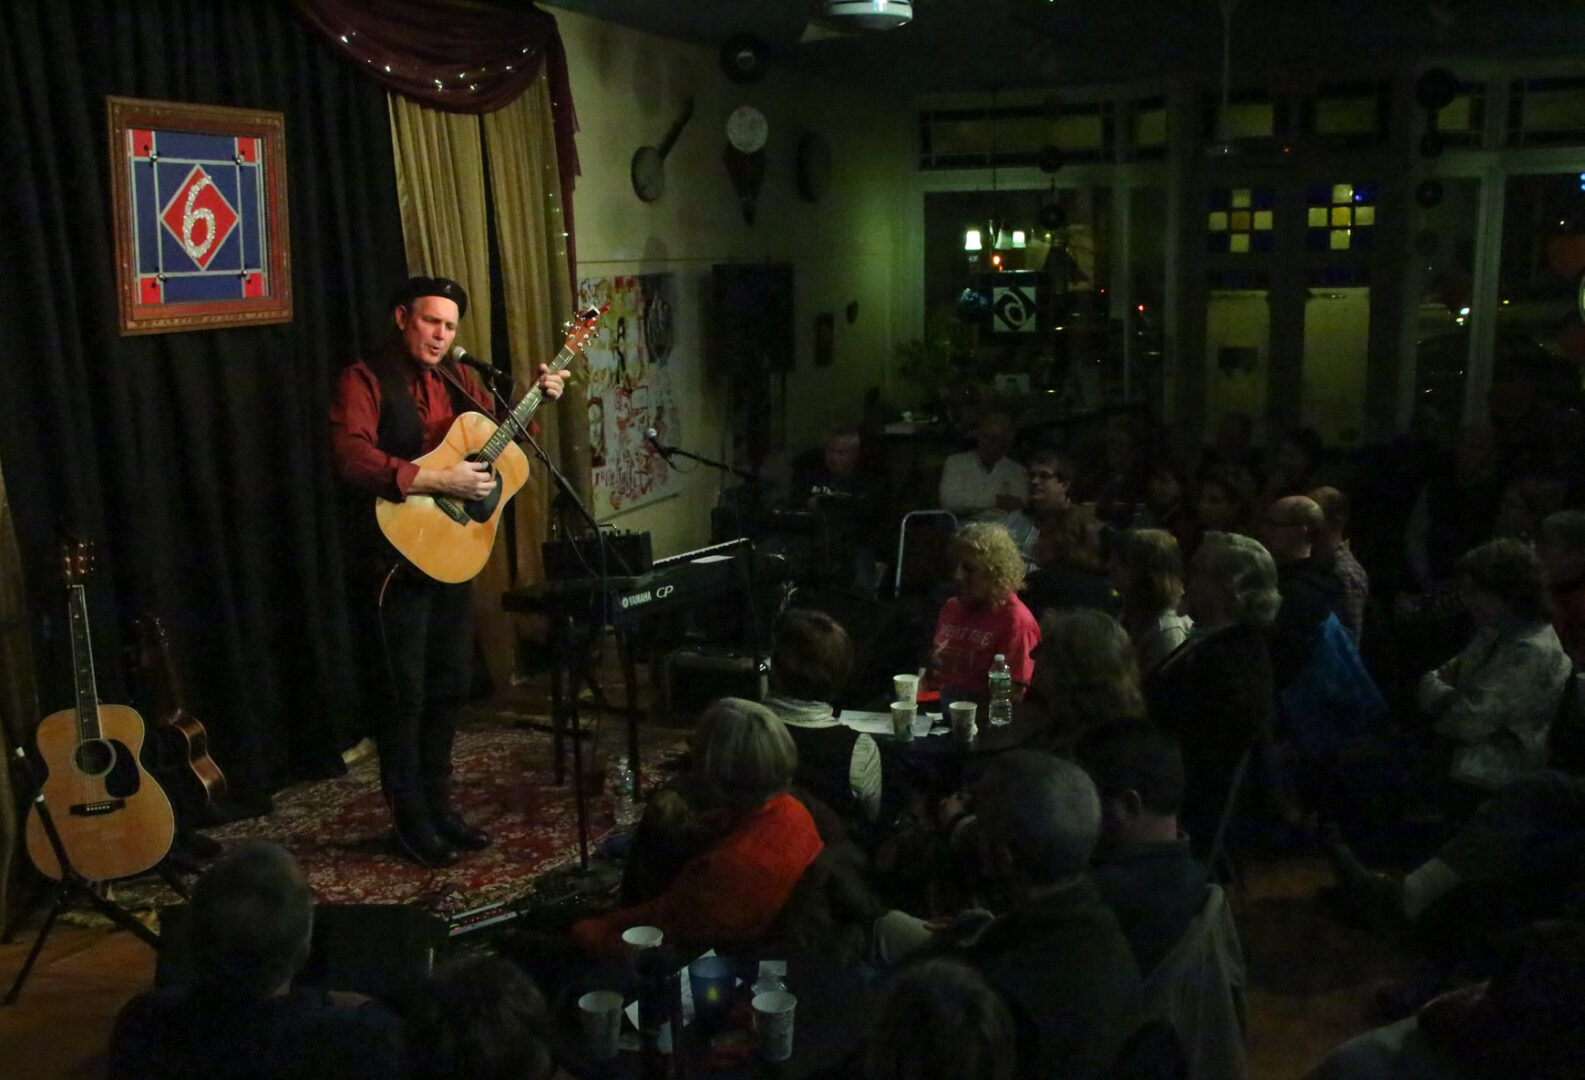 Greg Greenway performing music in front of a live audience